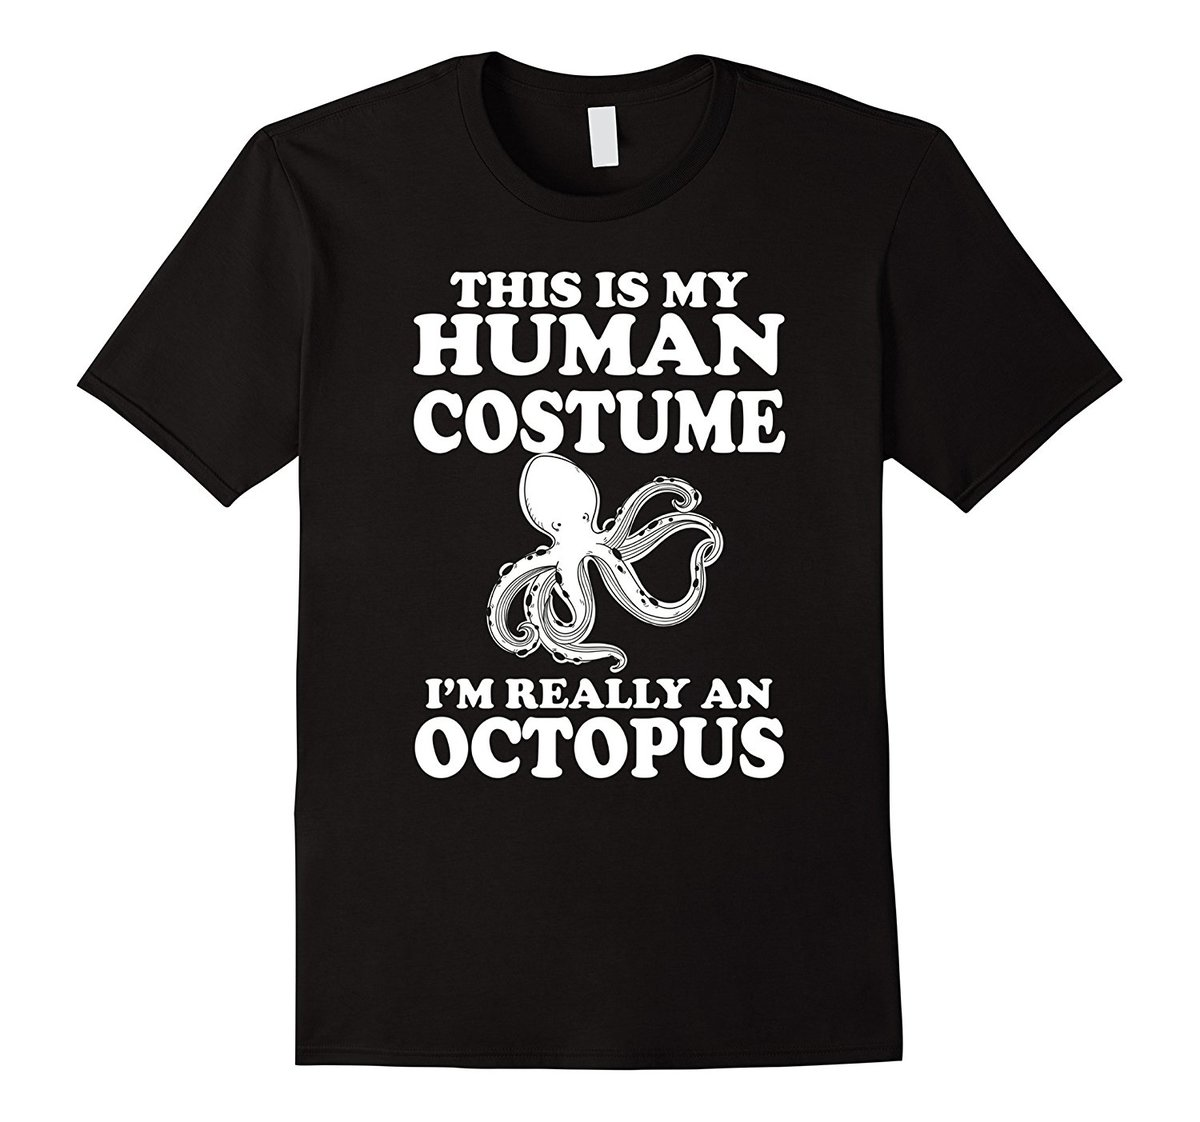 This Is My Human Costume I 39 m Really An Octopus Printed T Shirt Men 39 S Short Sleeve O Neck T Shirts Summer Stree Twear in T Shirts from Men 39 s Clothing